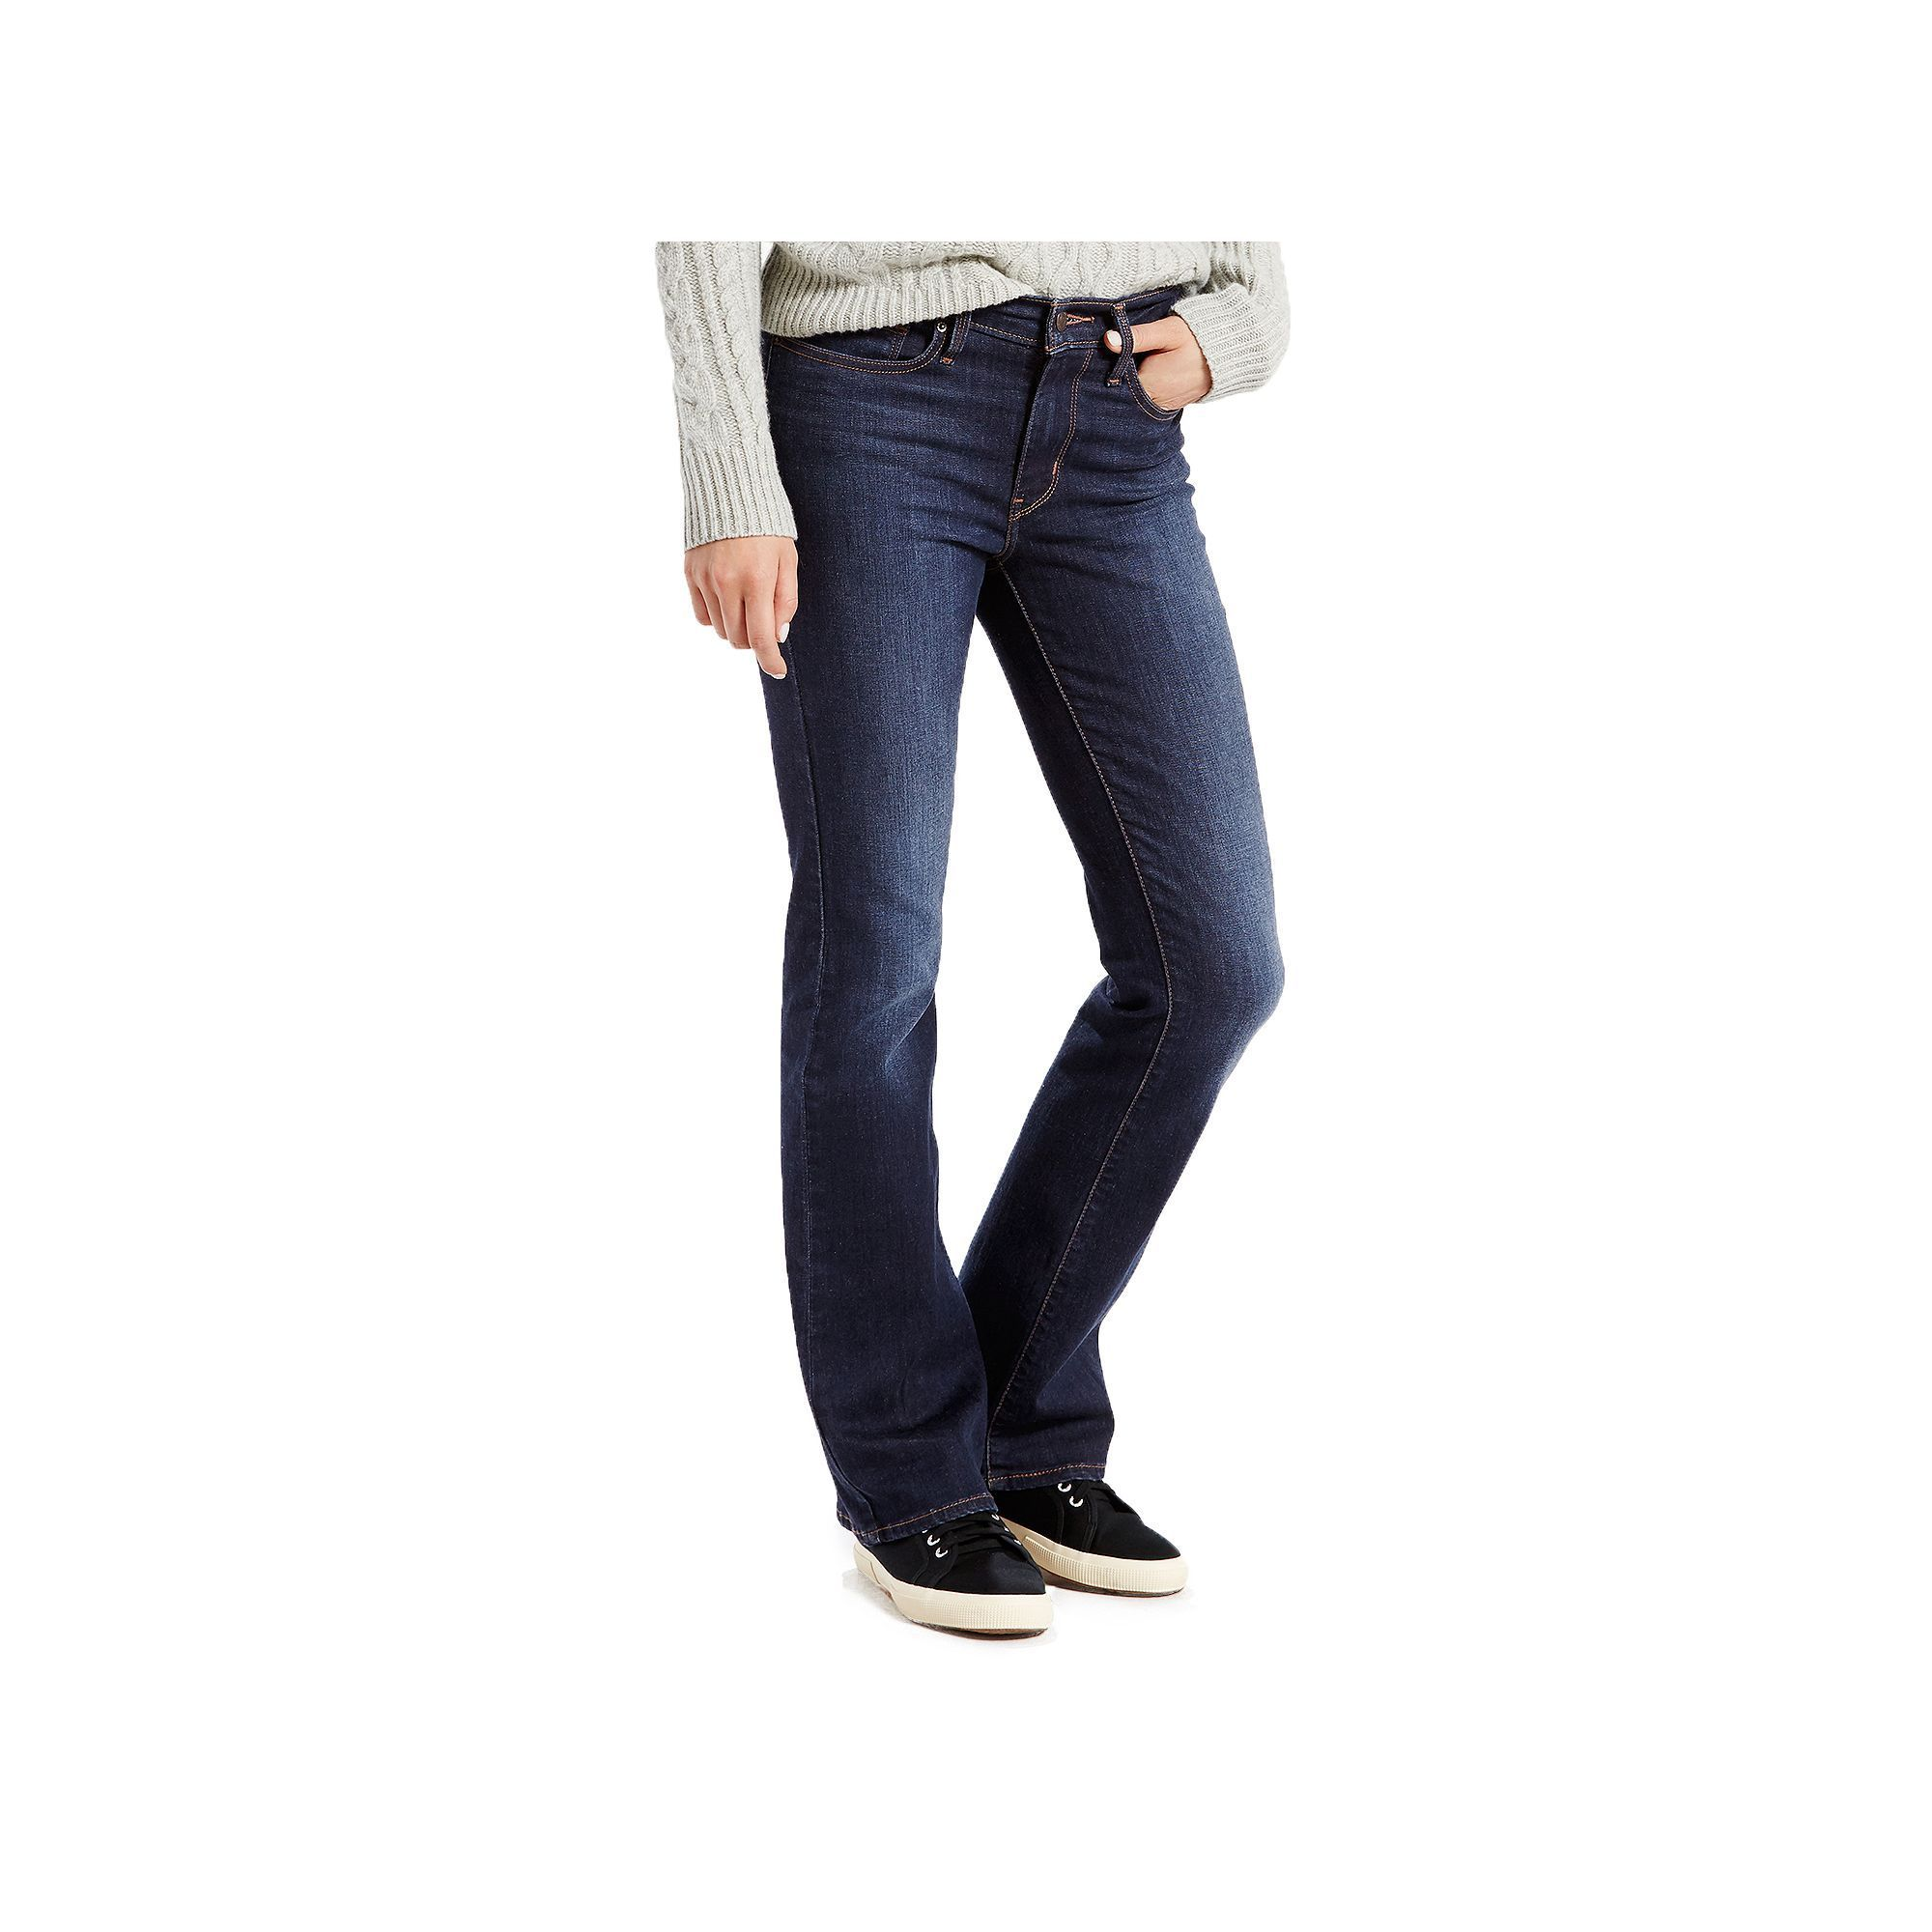 536a1f20530 Women's Levi's® Slimming Bootcut Jeans, Size: 16/33 Tall, Dark Blue